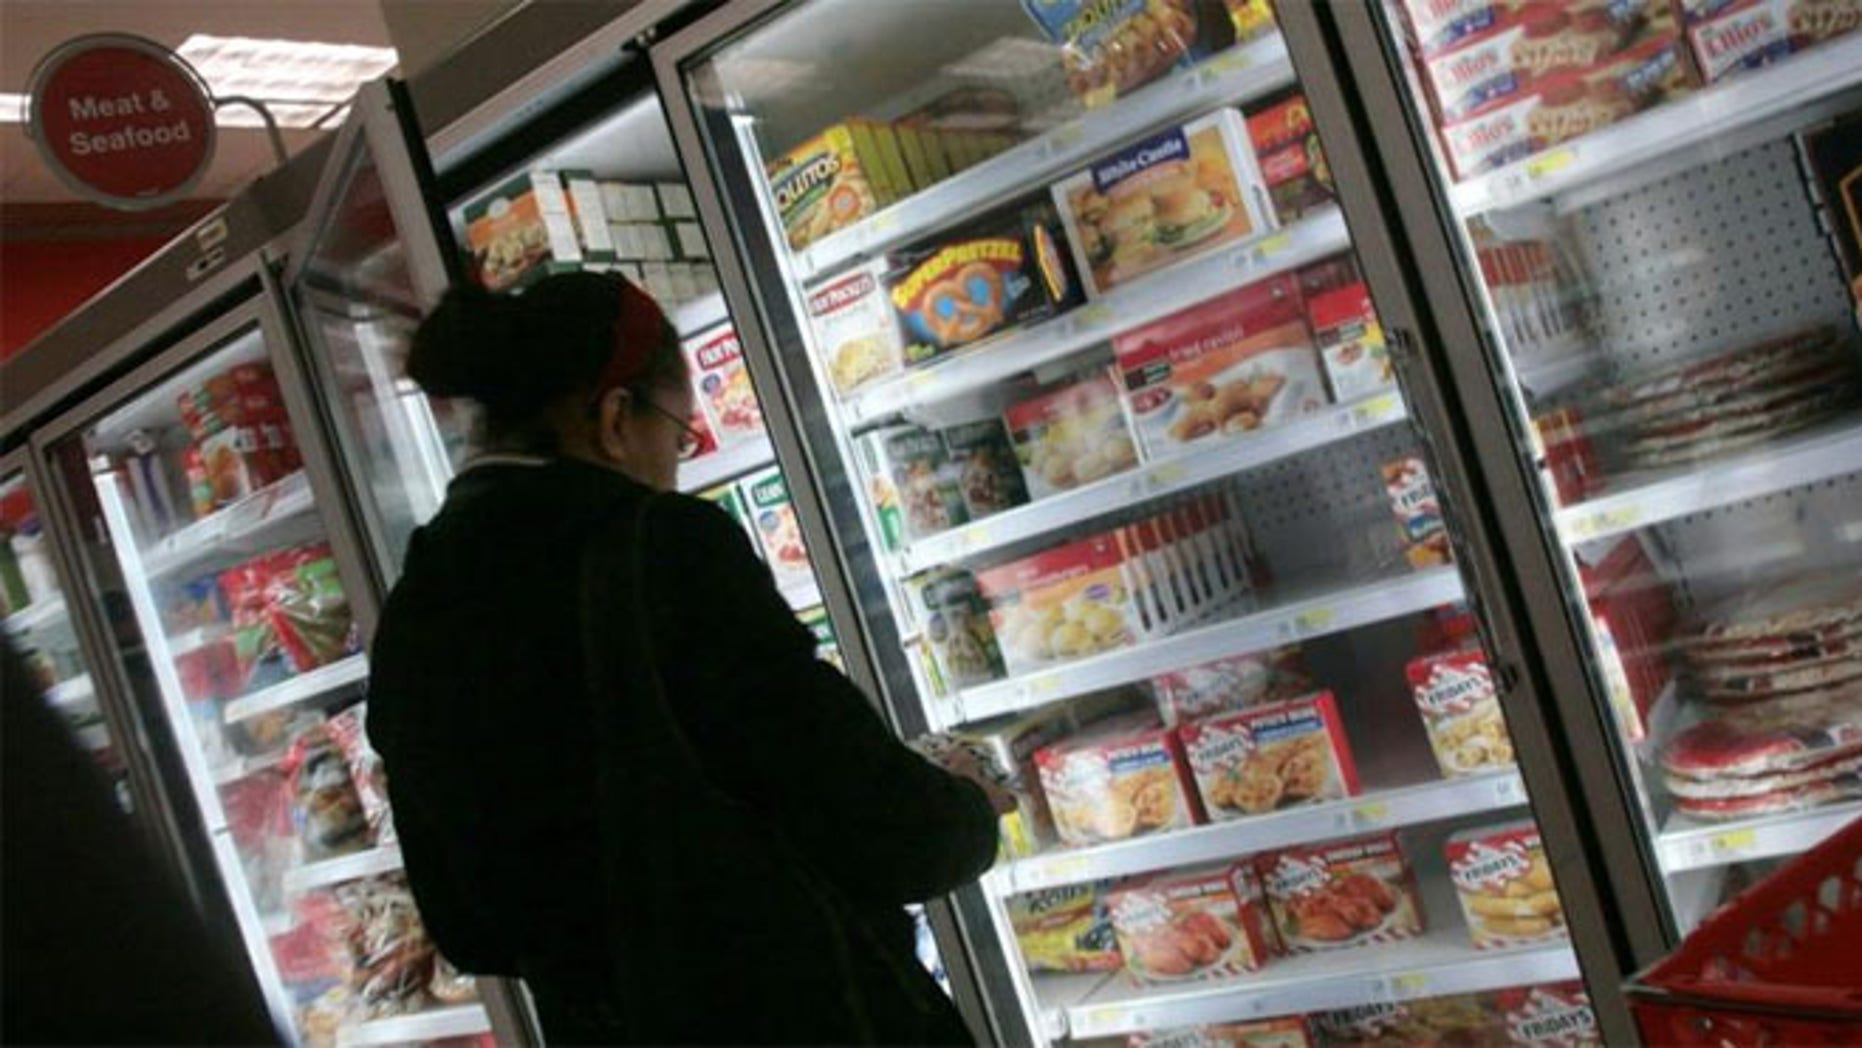 Frozen food makers are in the final stages of preparing a major public relations campaign to defend the nutritional reputation of their products.